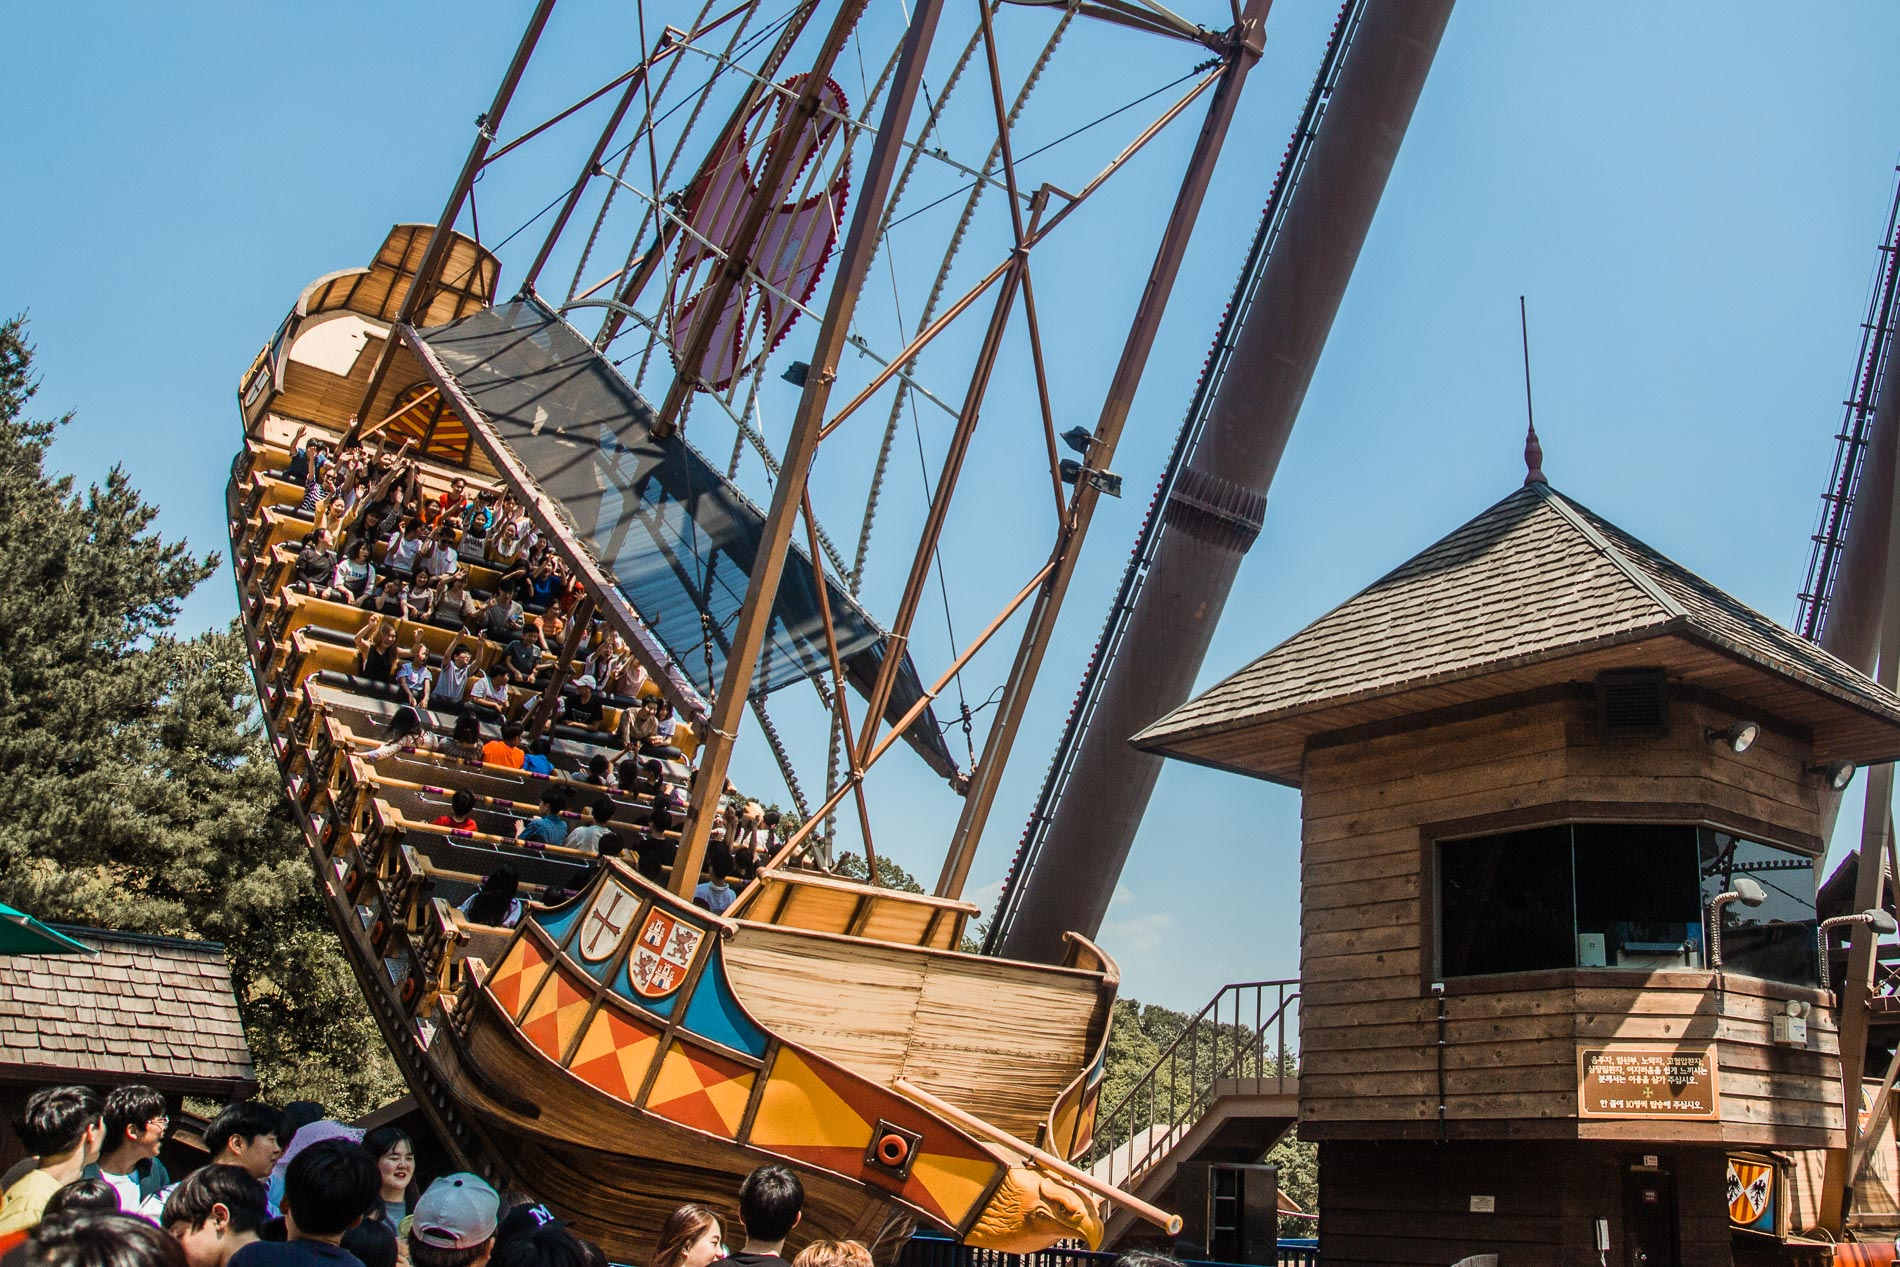 Pirate Ship in Everland, Seoul